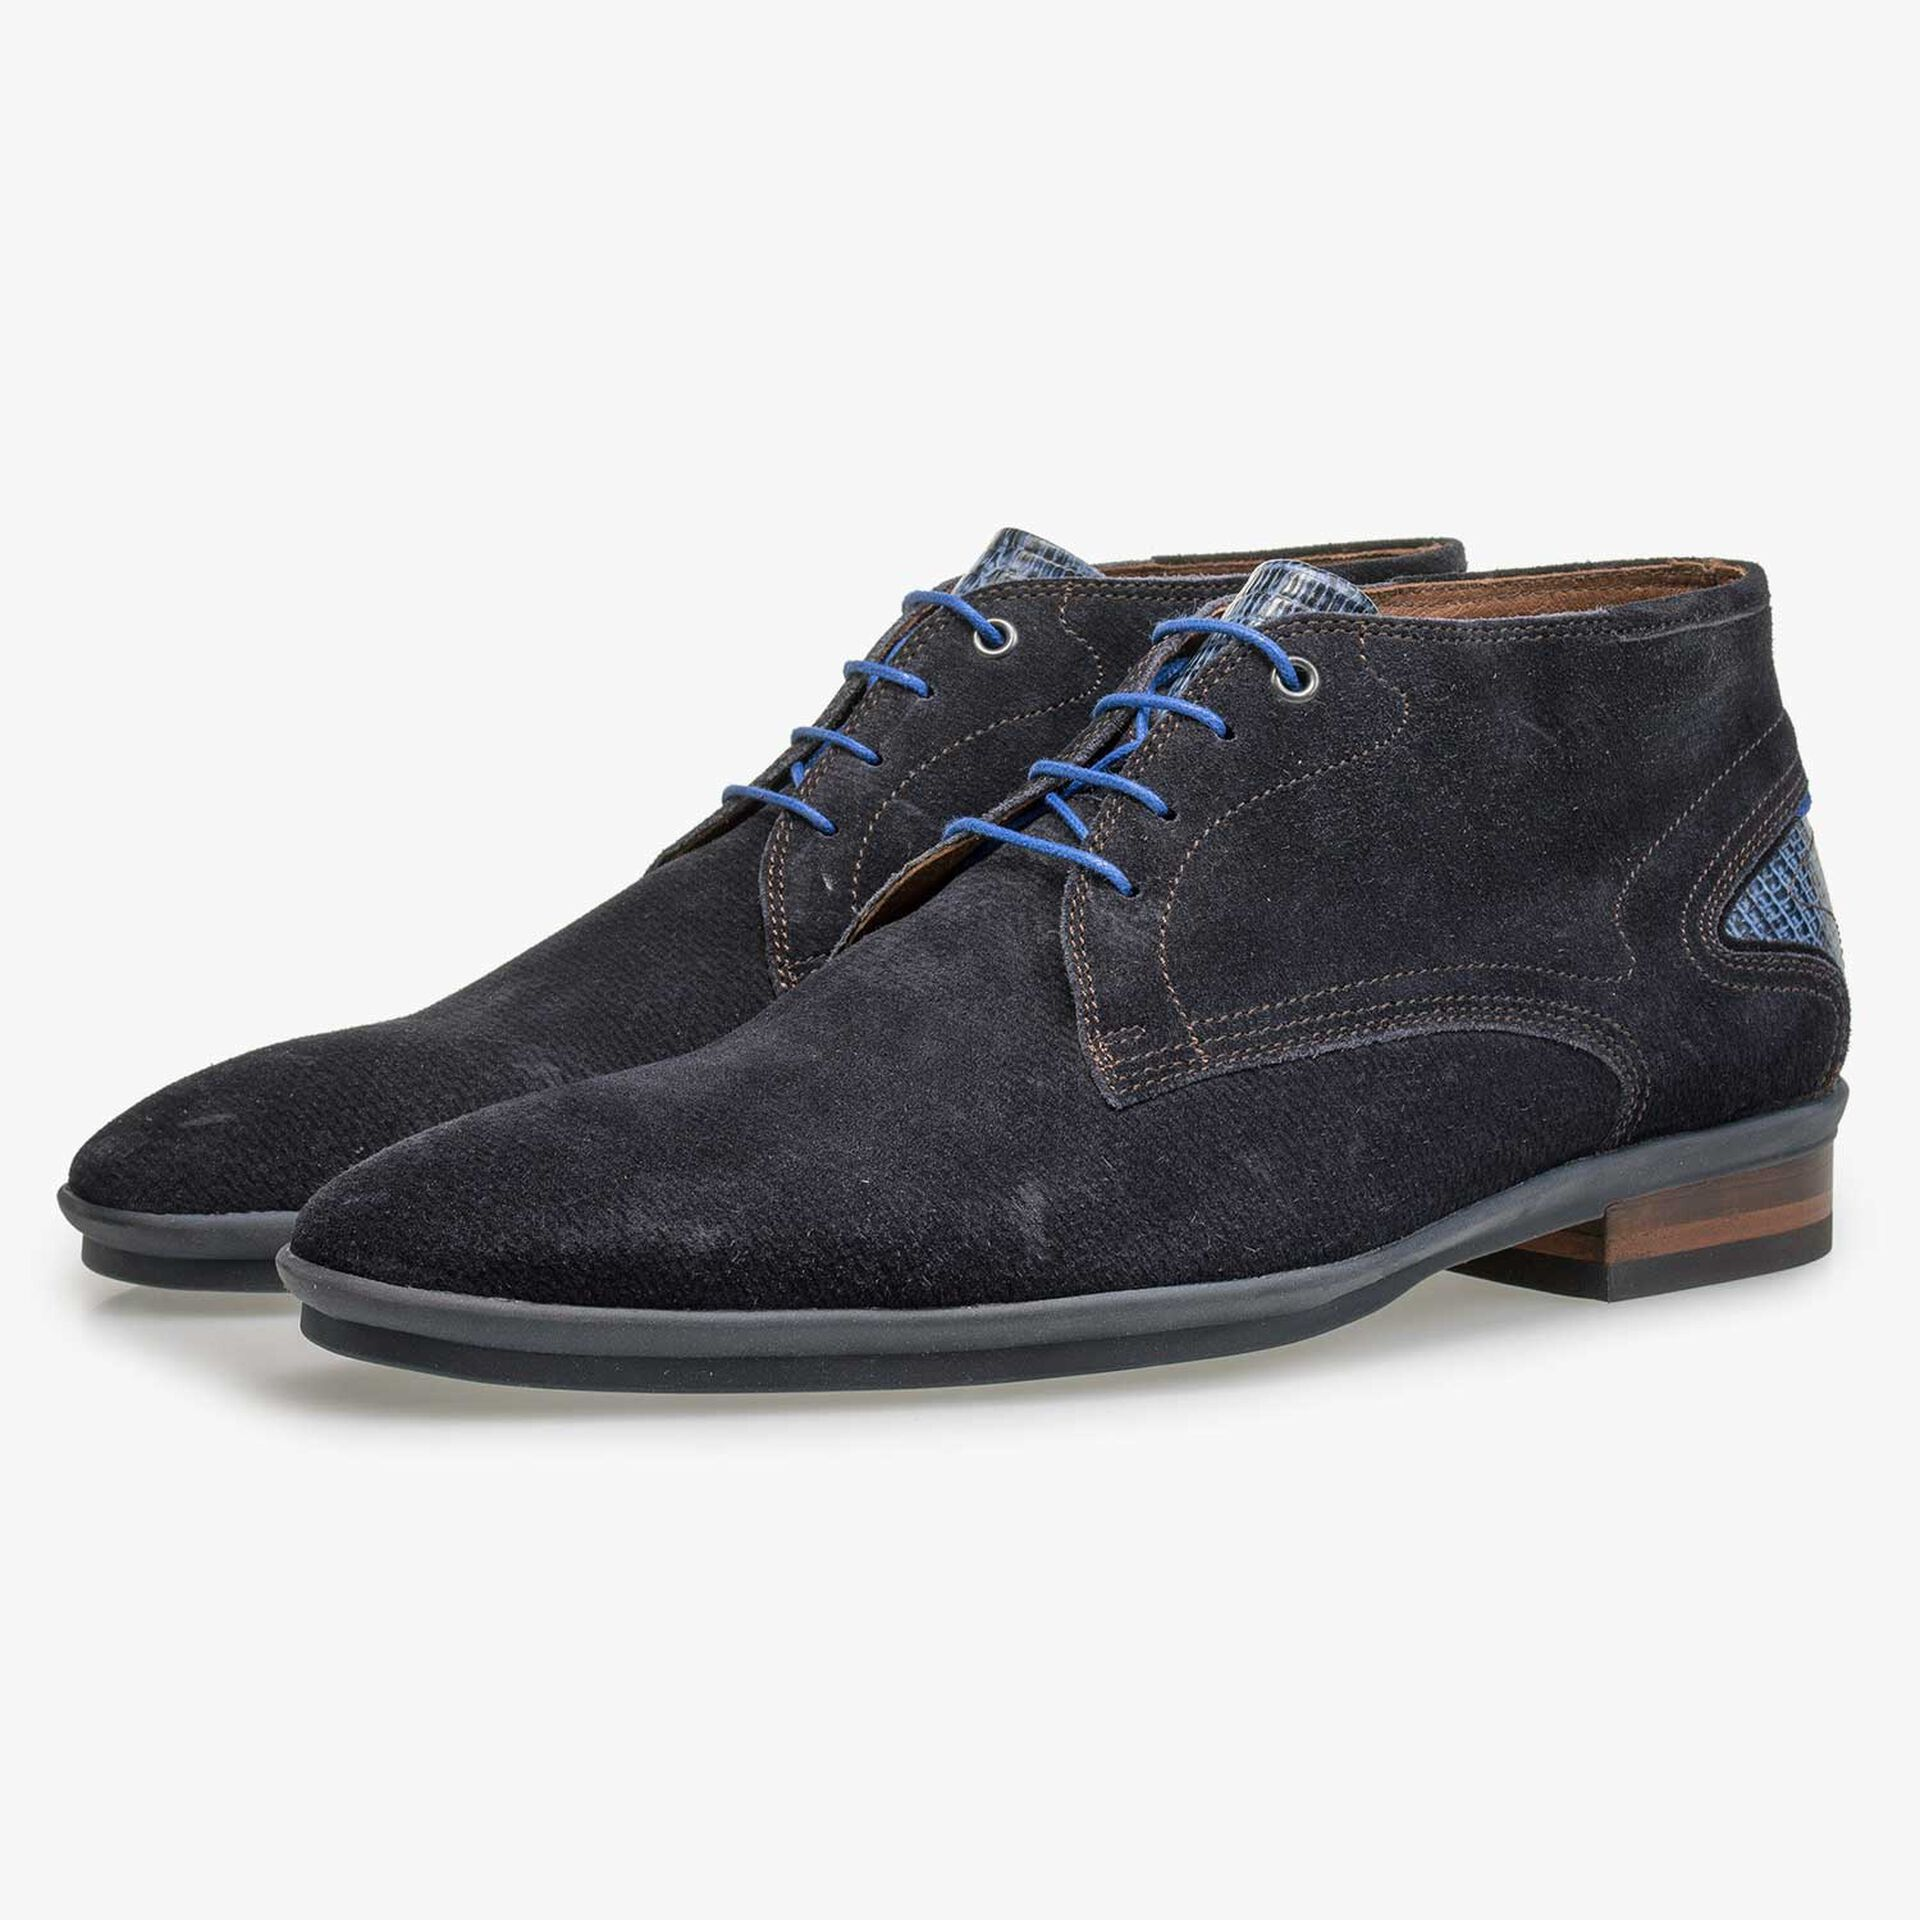 Blue patterned calf suede leather lace boot